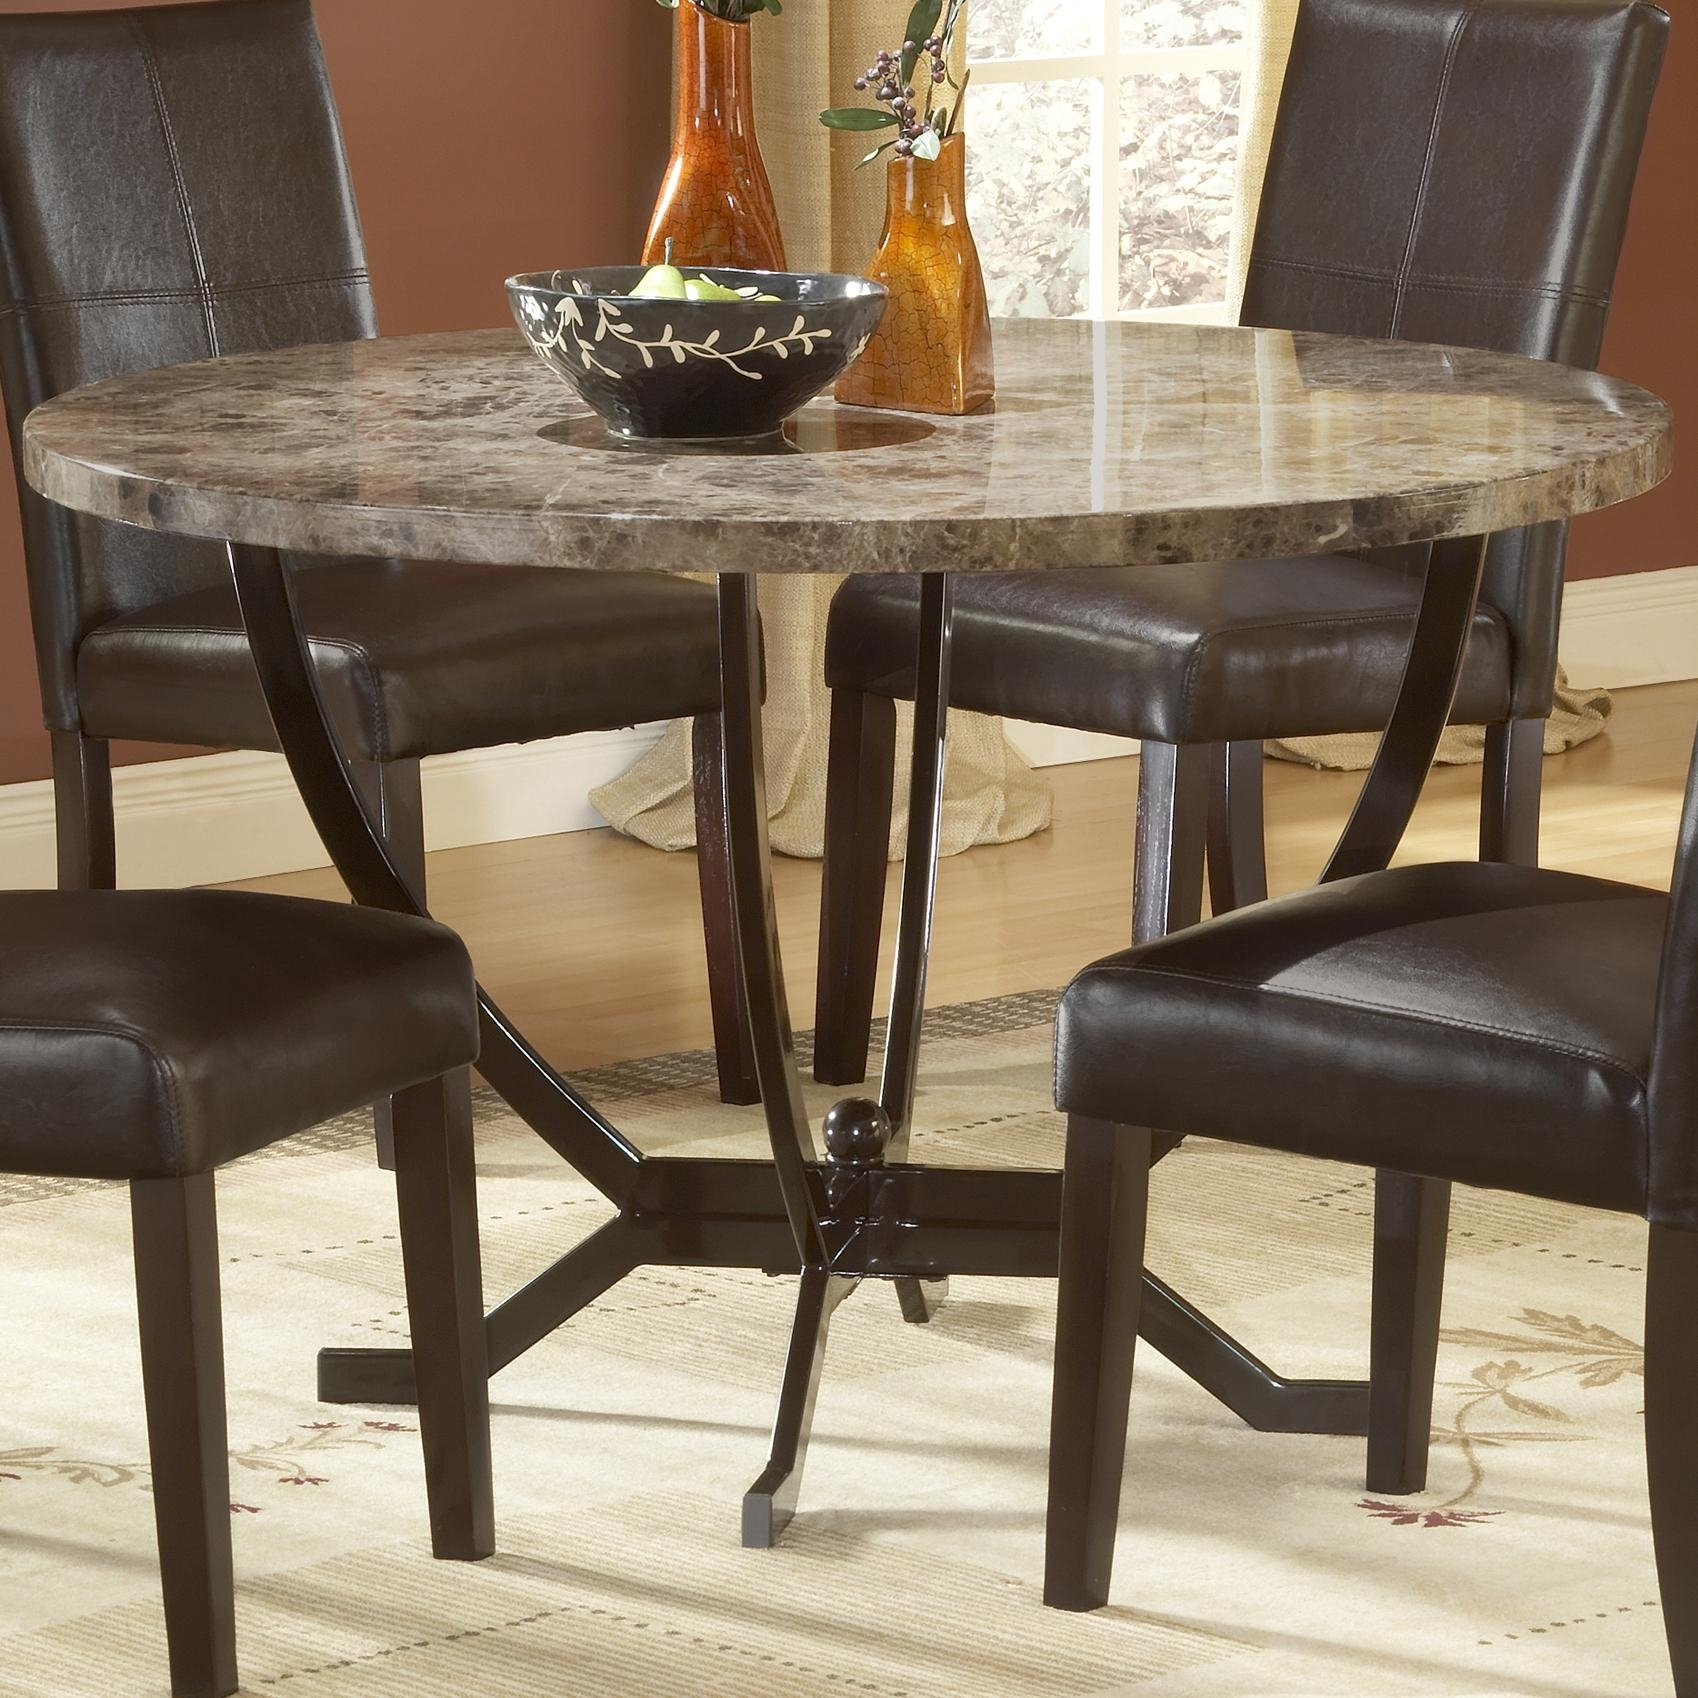 Hillsdale Monaco Round Dining Table | Lindy's Furniture Company With Regard To Most Recently Released Lindy Espresso Rectangle Dining Tables (Photo 8 of 20)